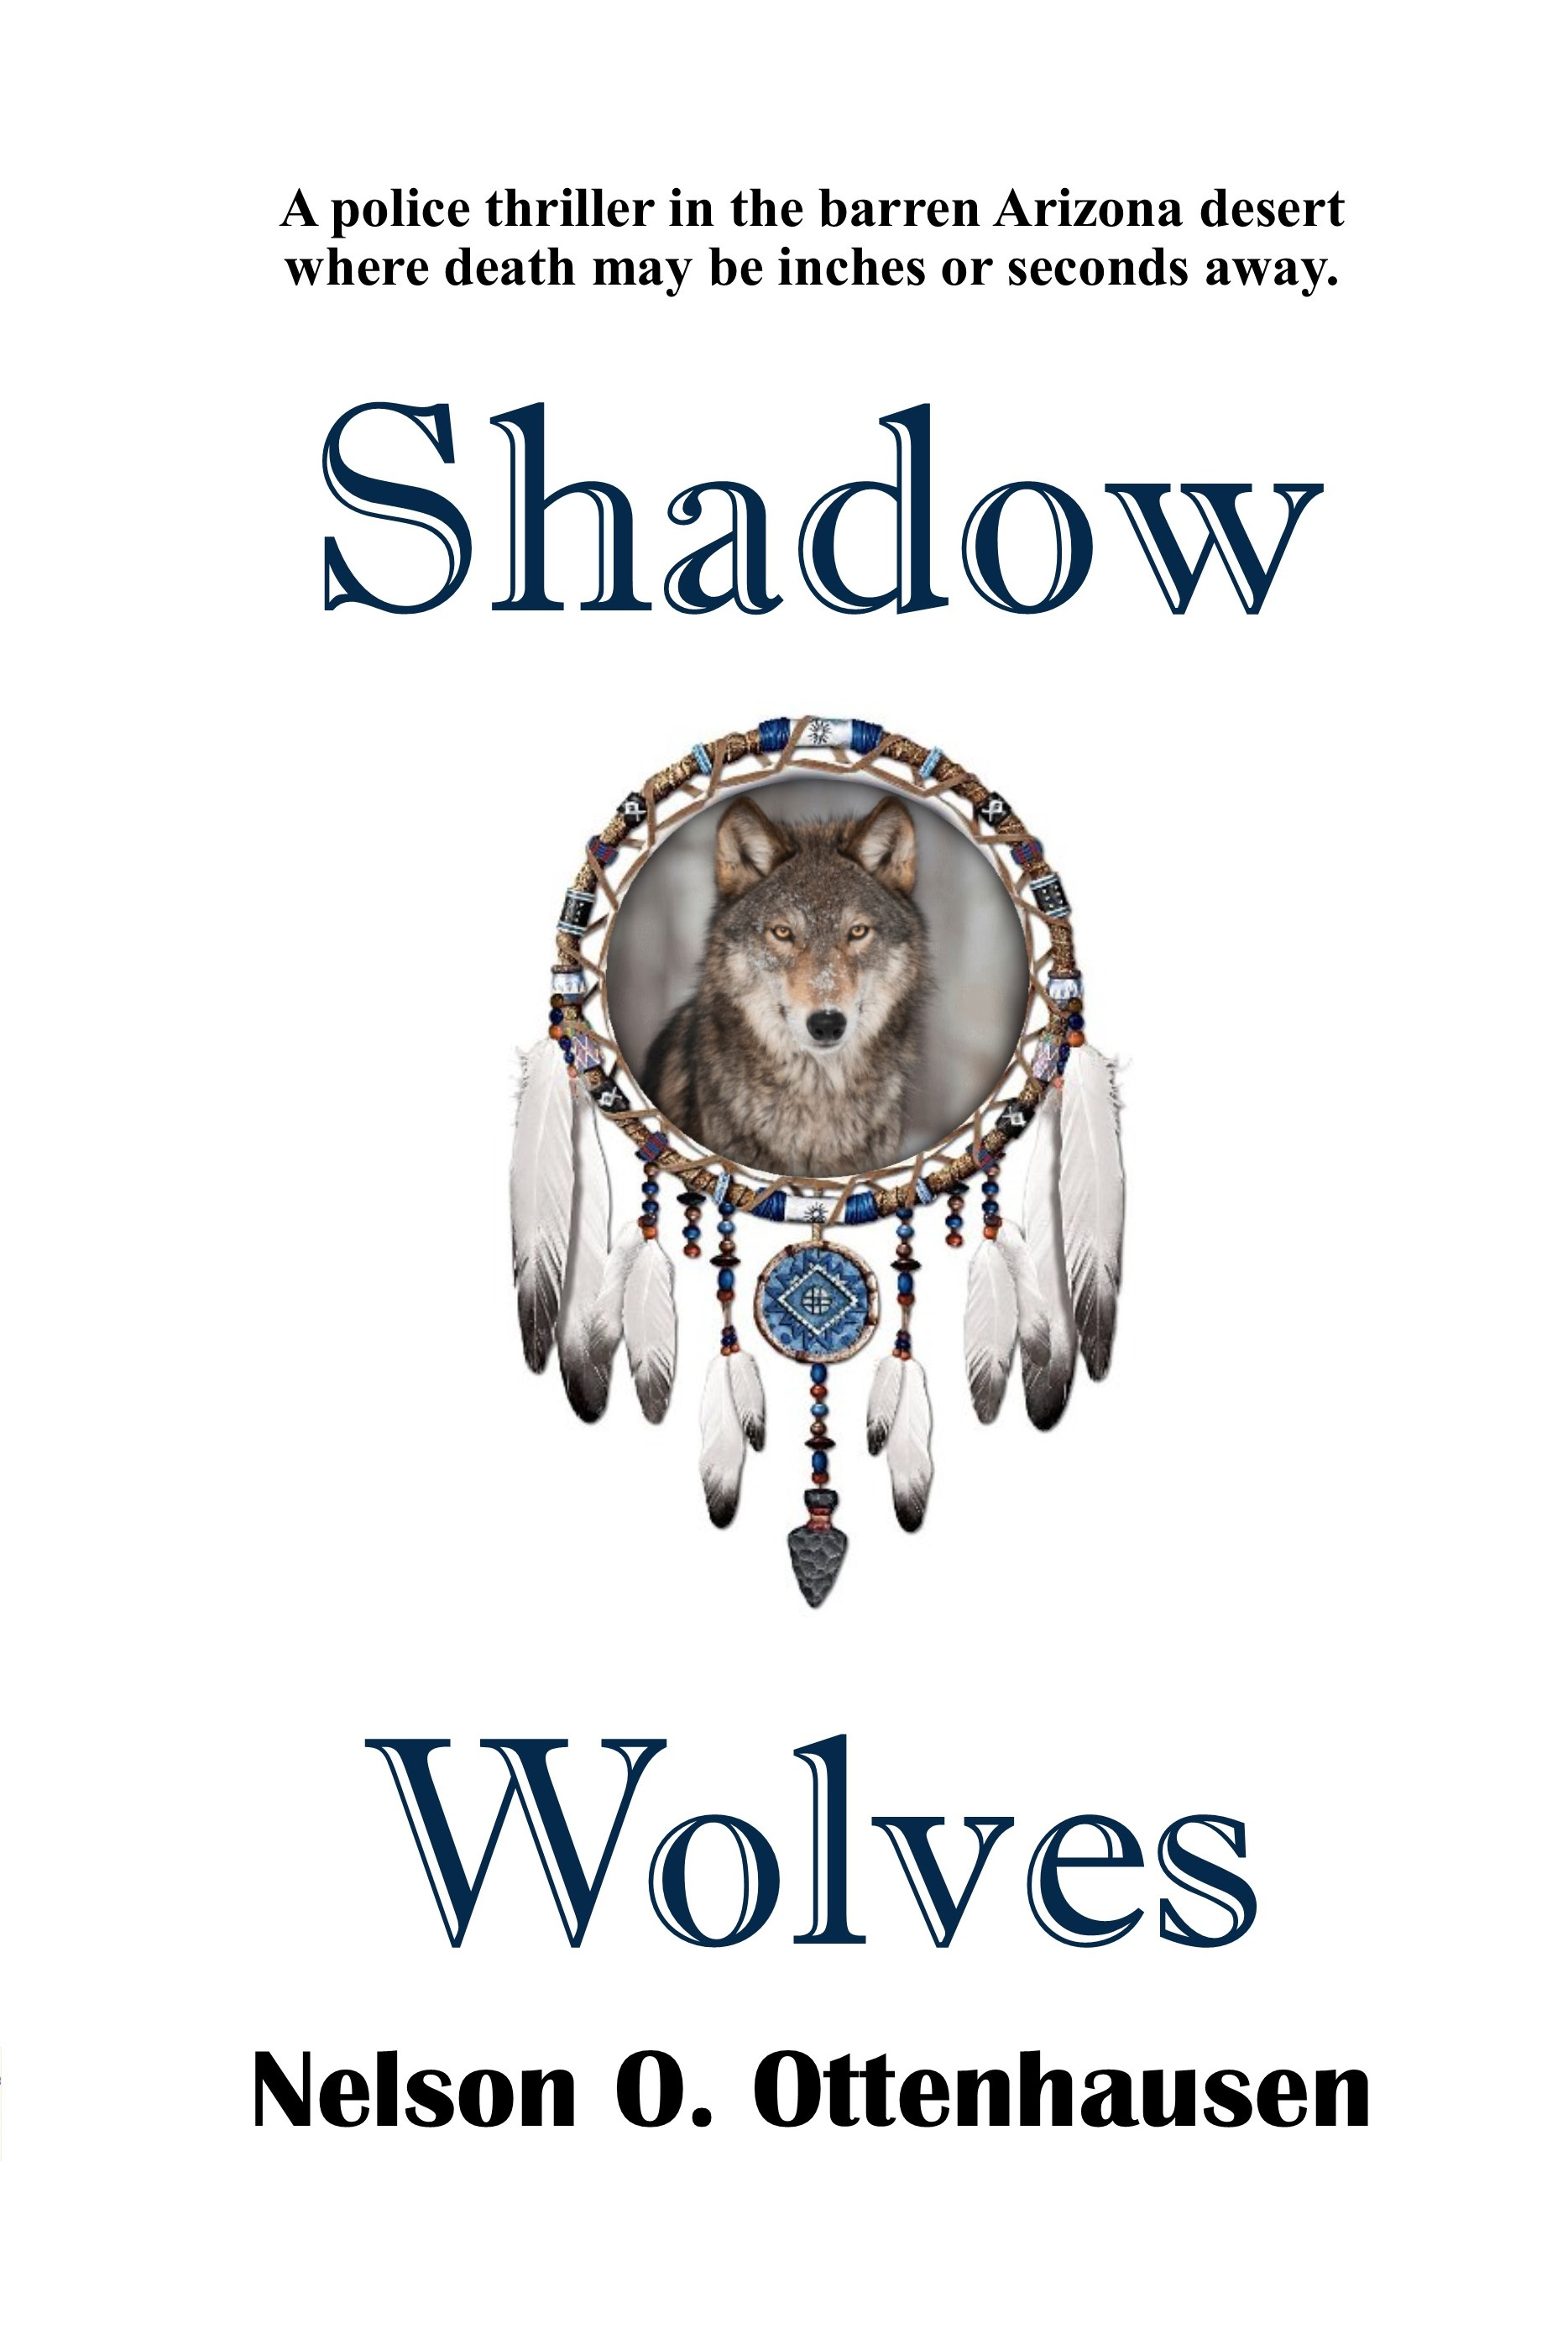 Shadow Wolves by Nelson Ottenhausen